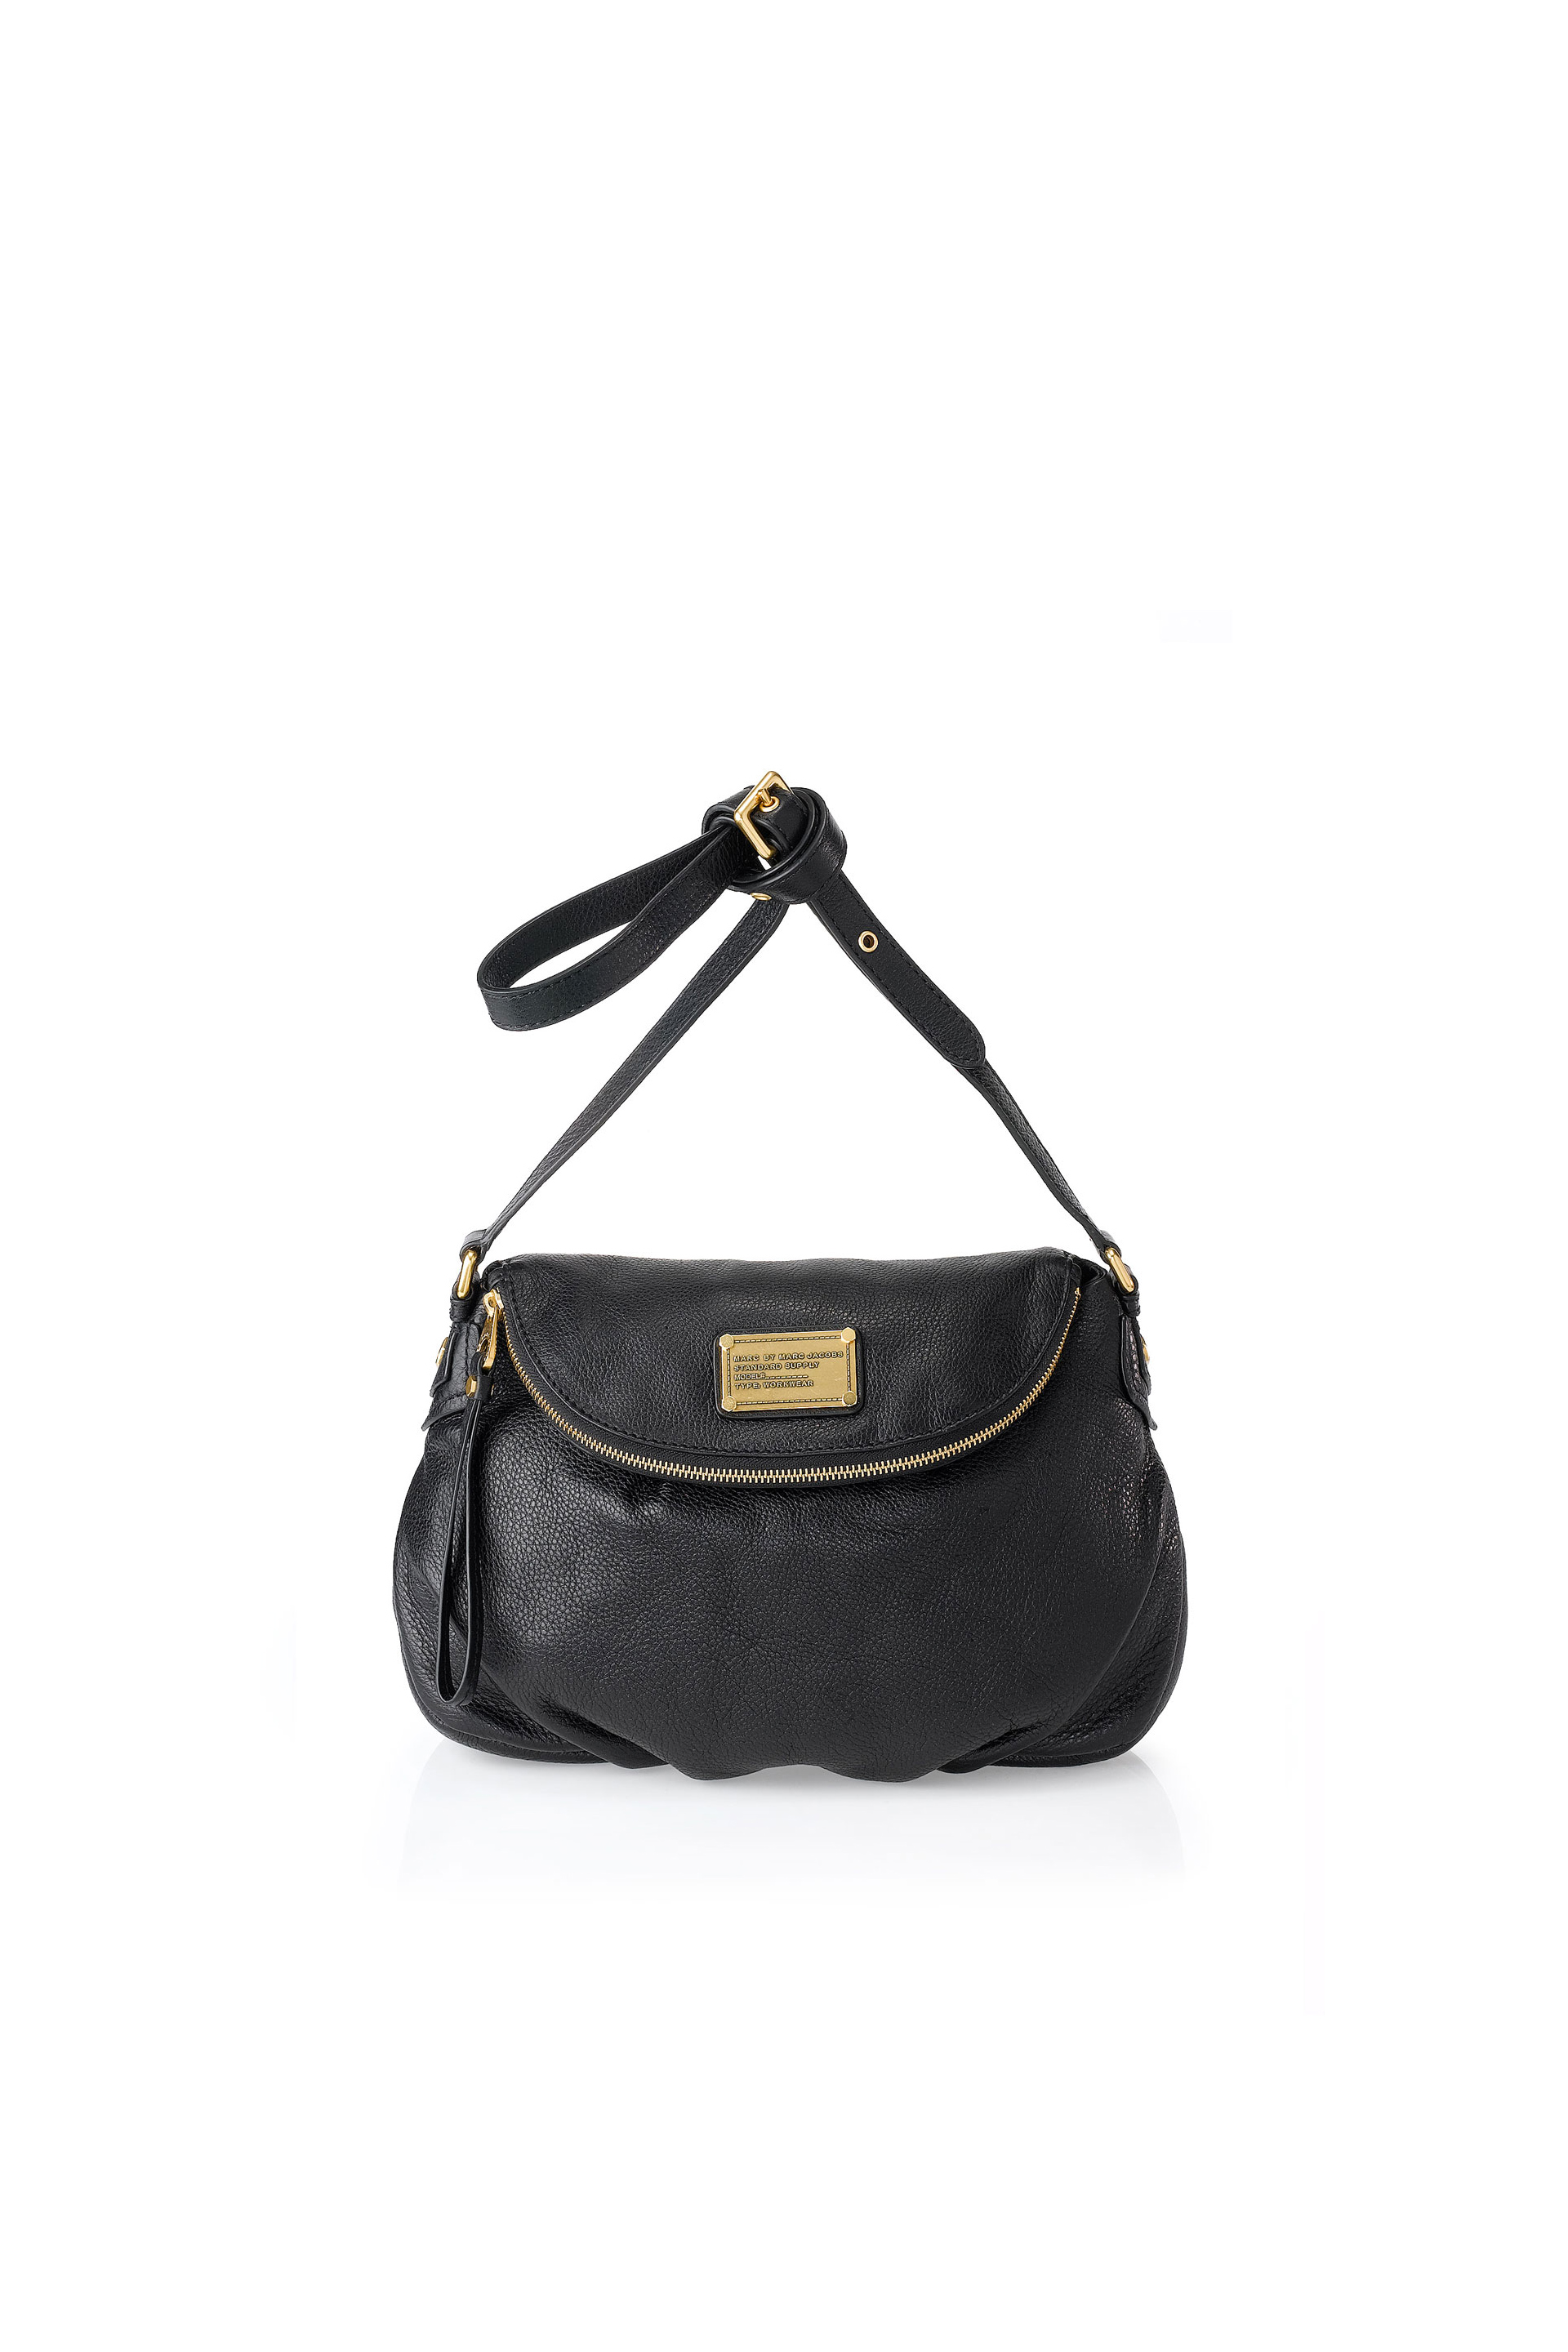 Classic Q Natasha - Marc by Marc Jacobs - Shop marcjacobs.com - Marc Jacobs